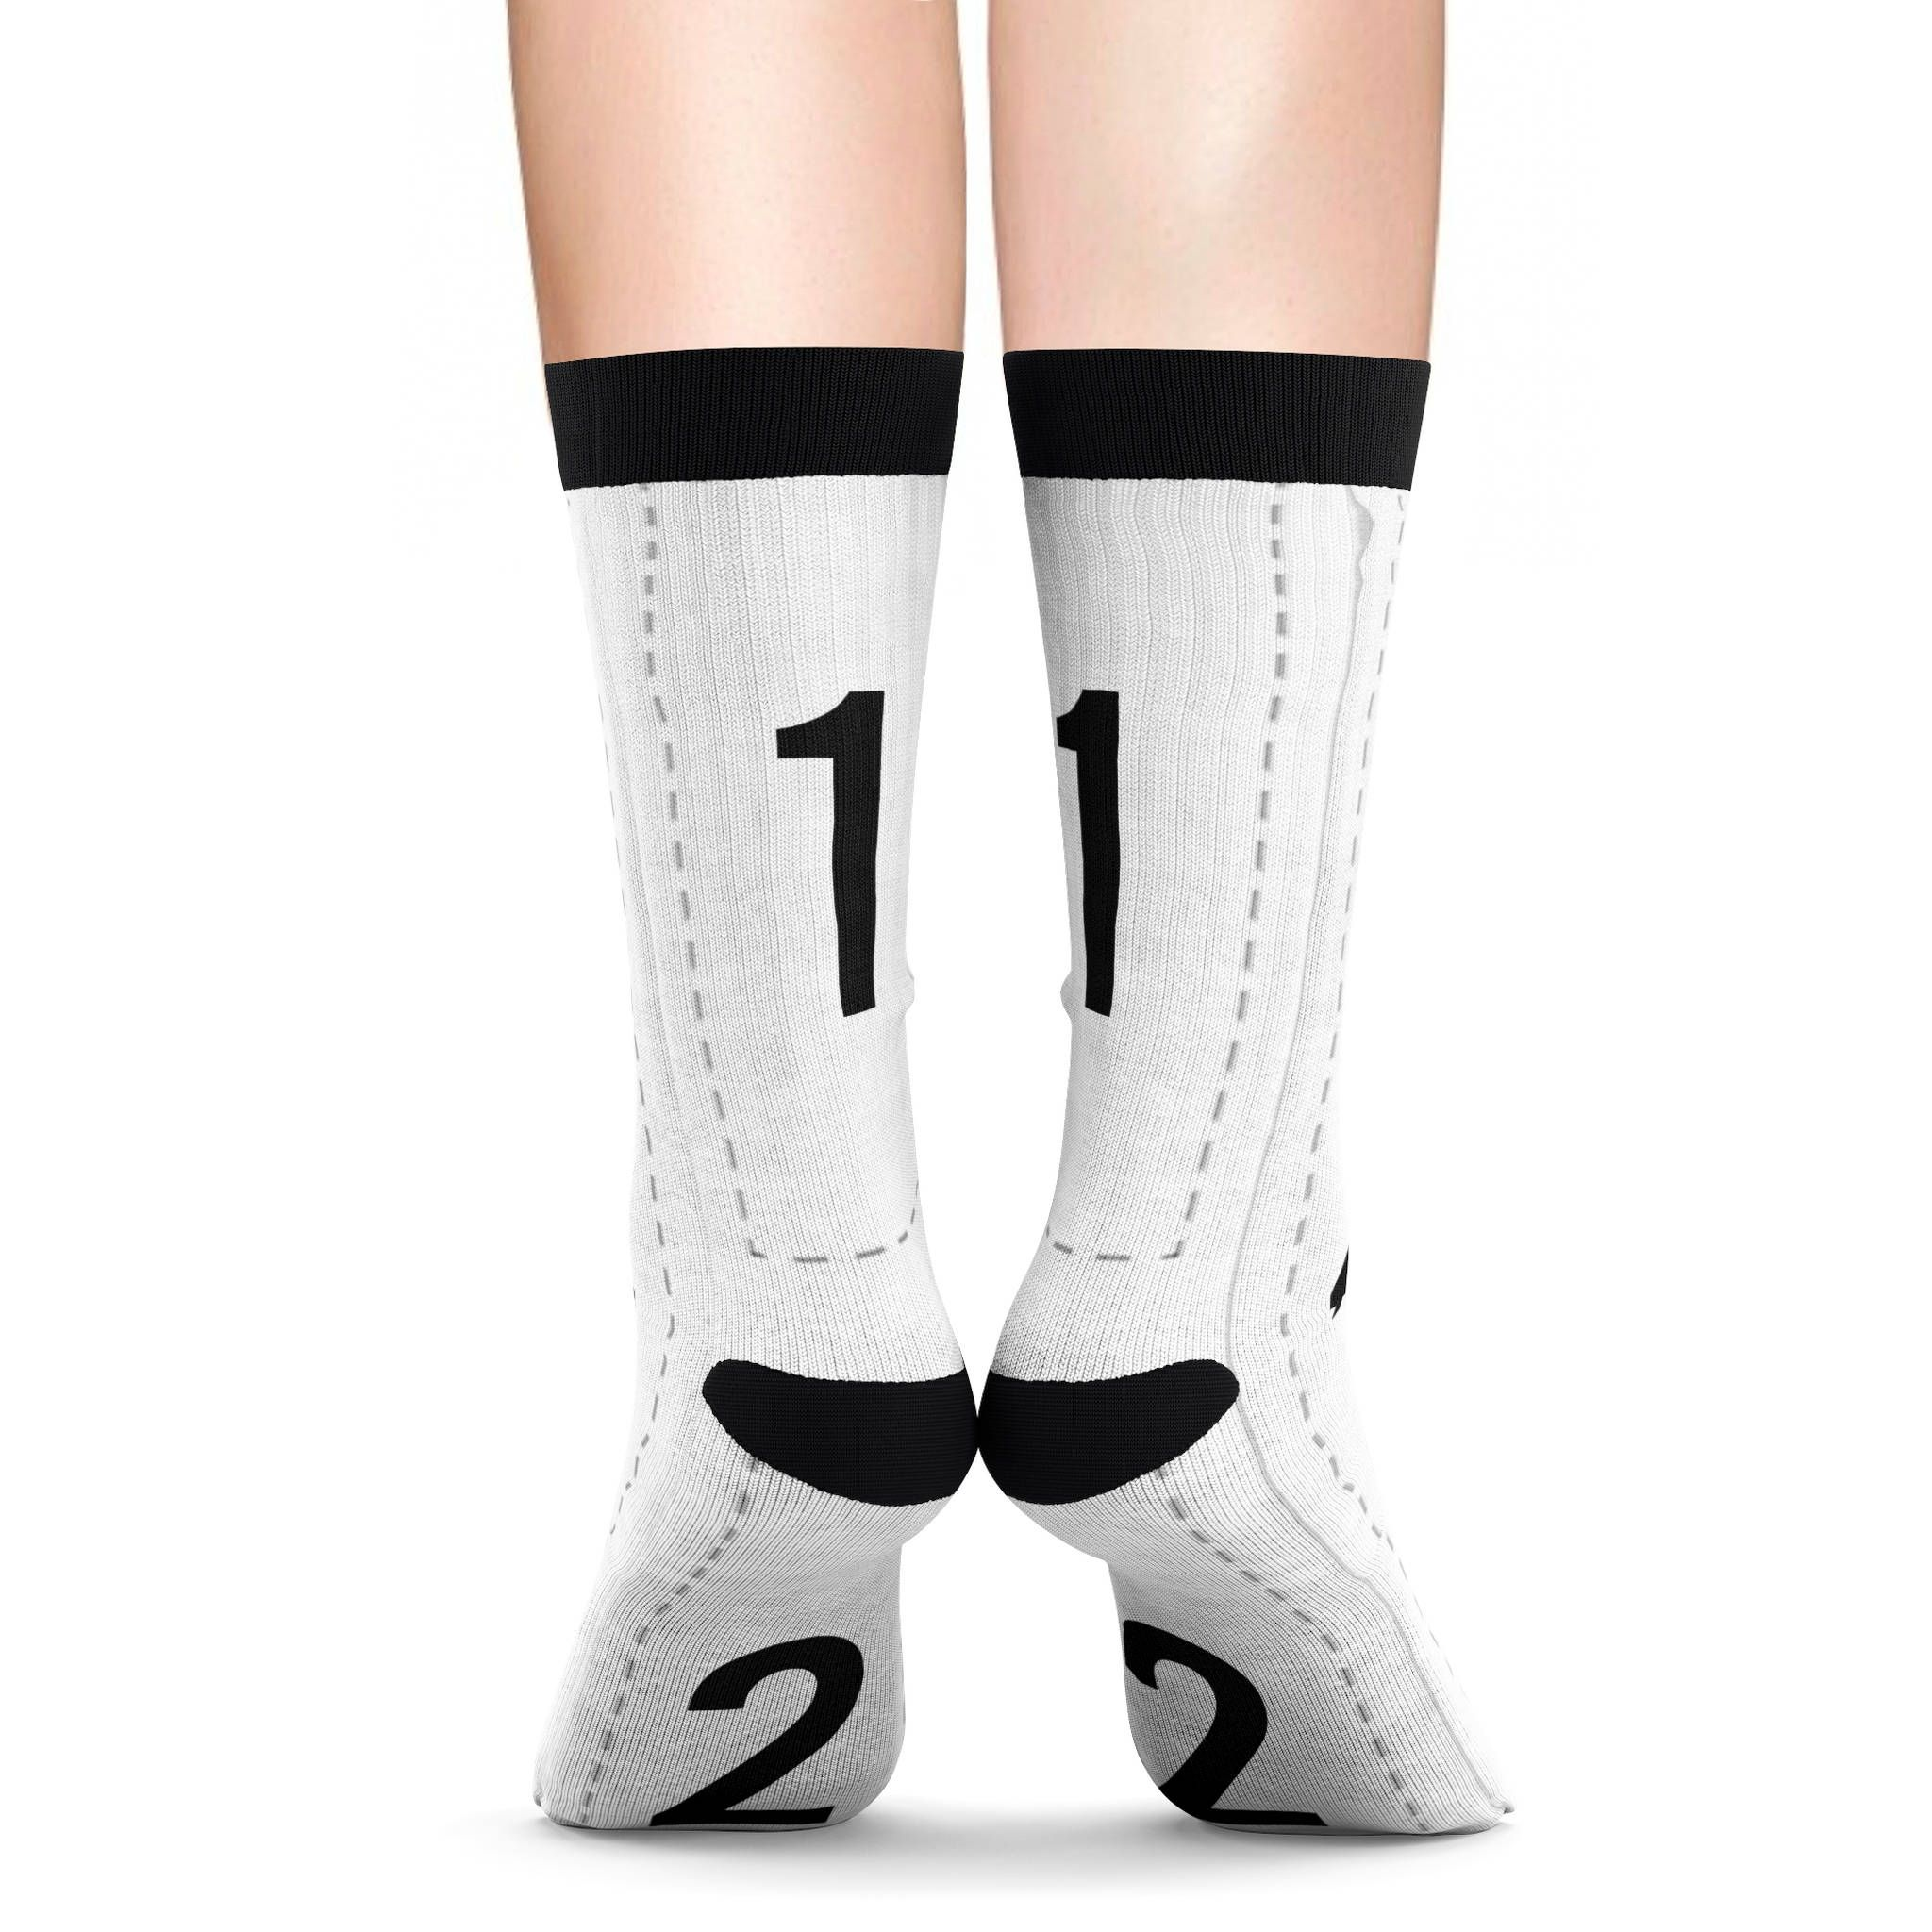 Personalized Sublimation Socks socks with face on it